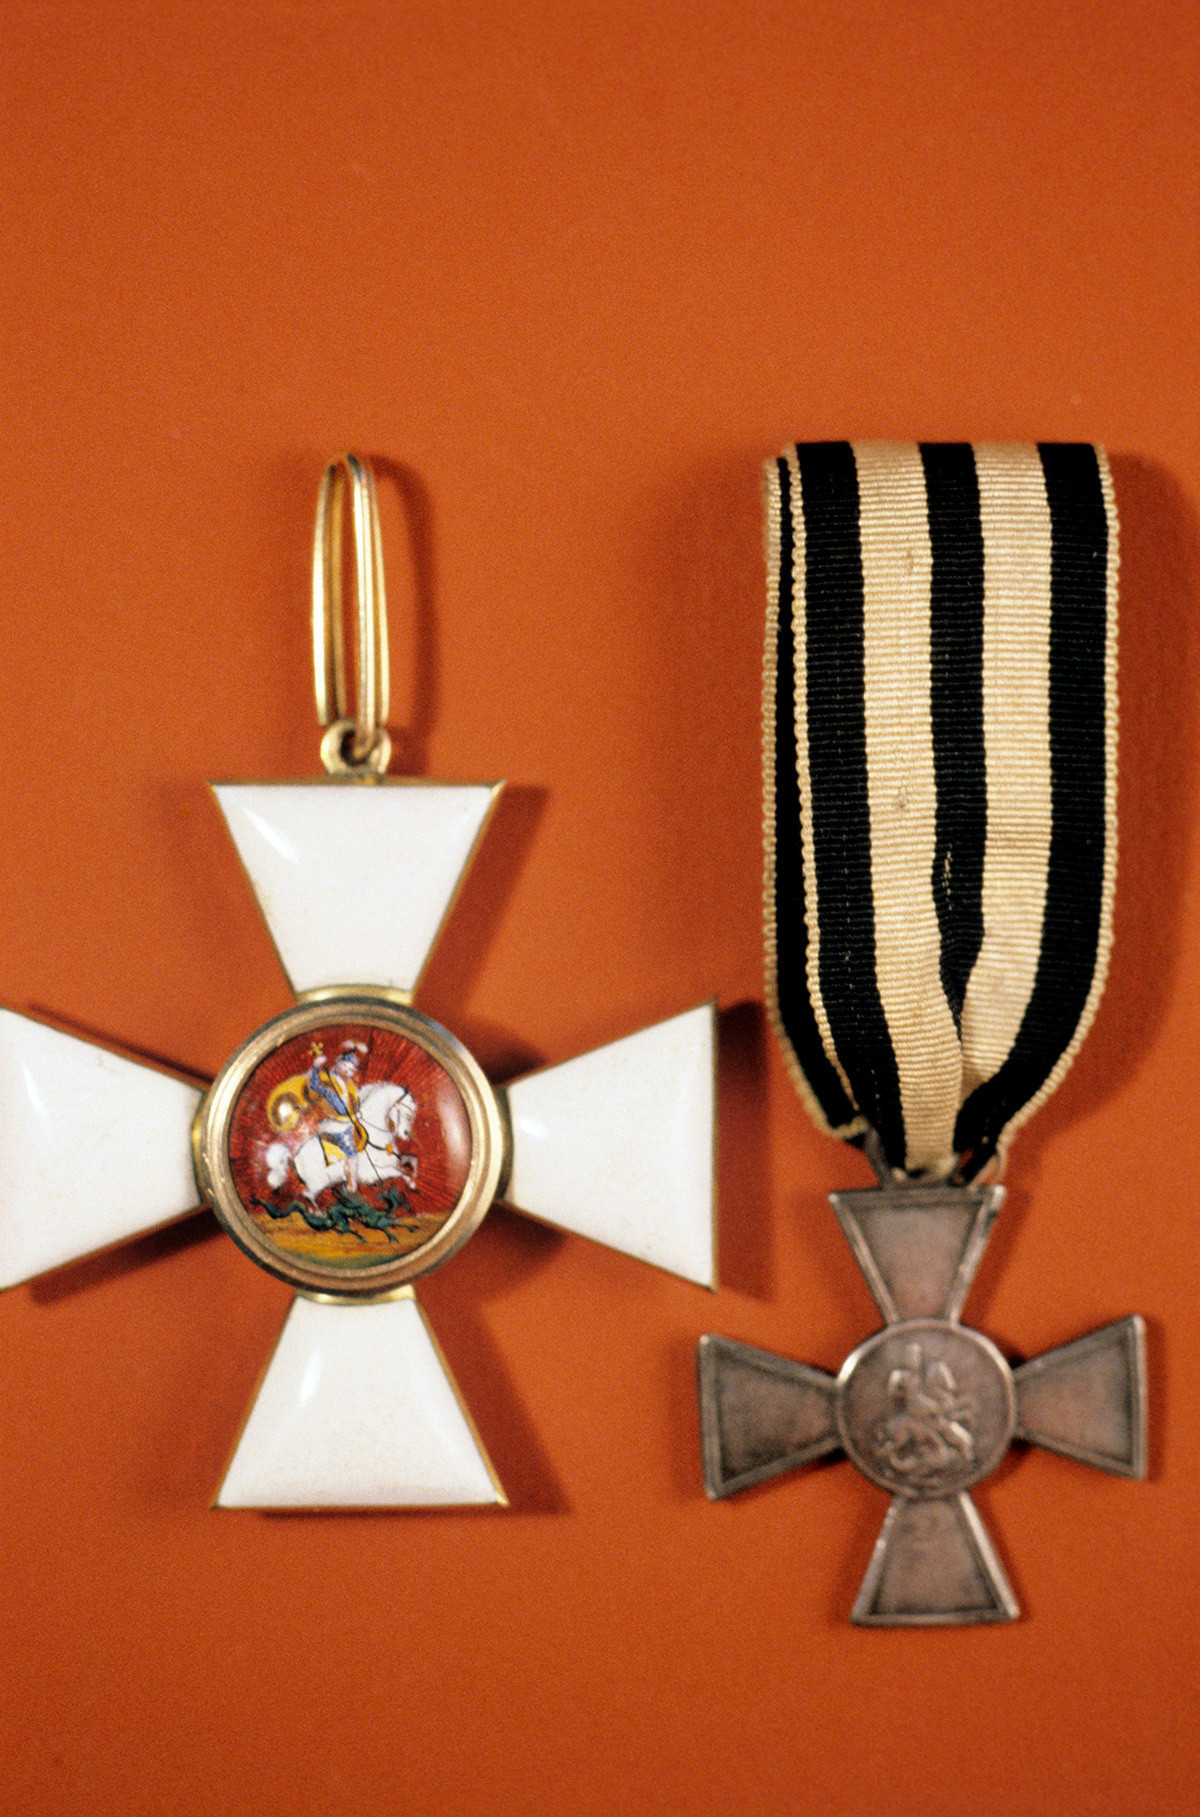 The Cross (badge) (L) of the Order of St. George, and the iron Cross of St. George (R), decoration of the Order meant for soldiers